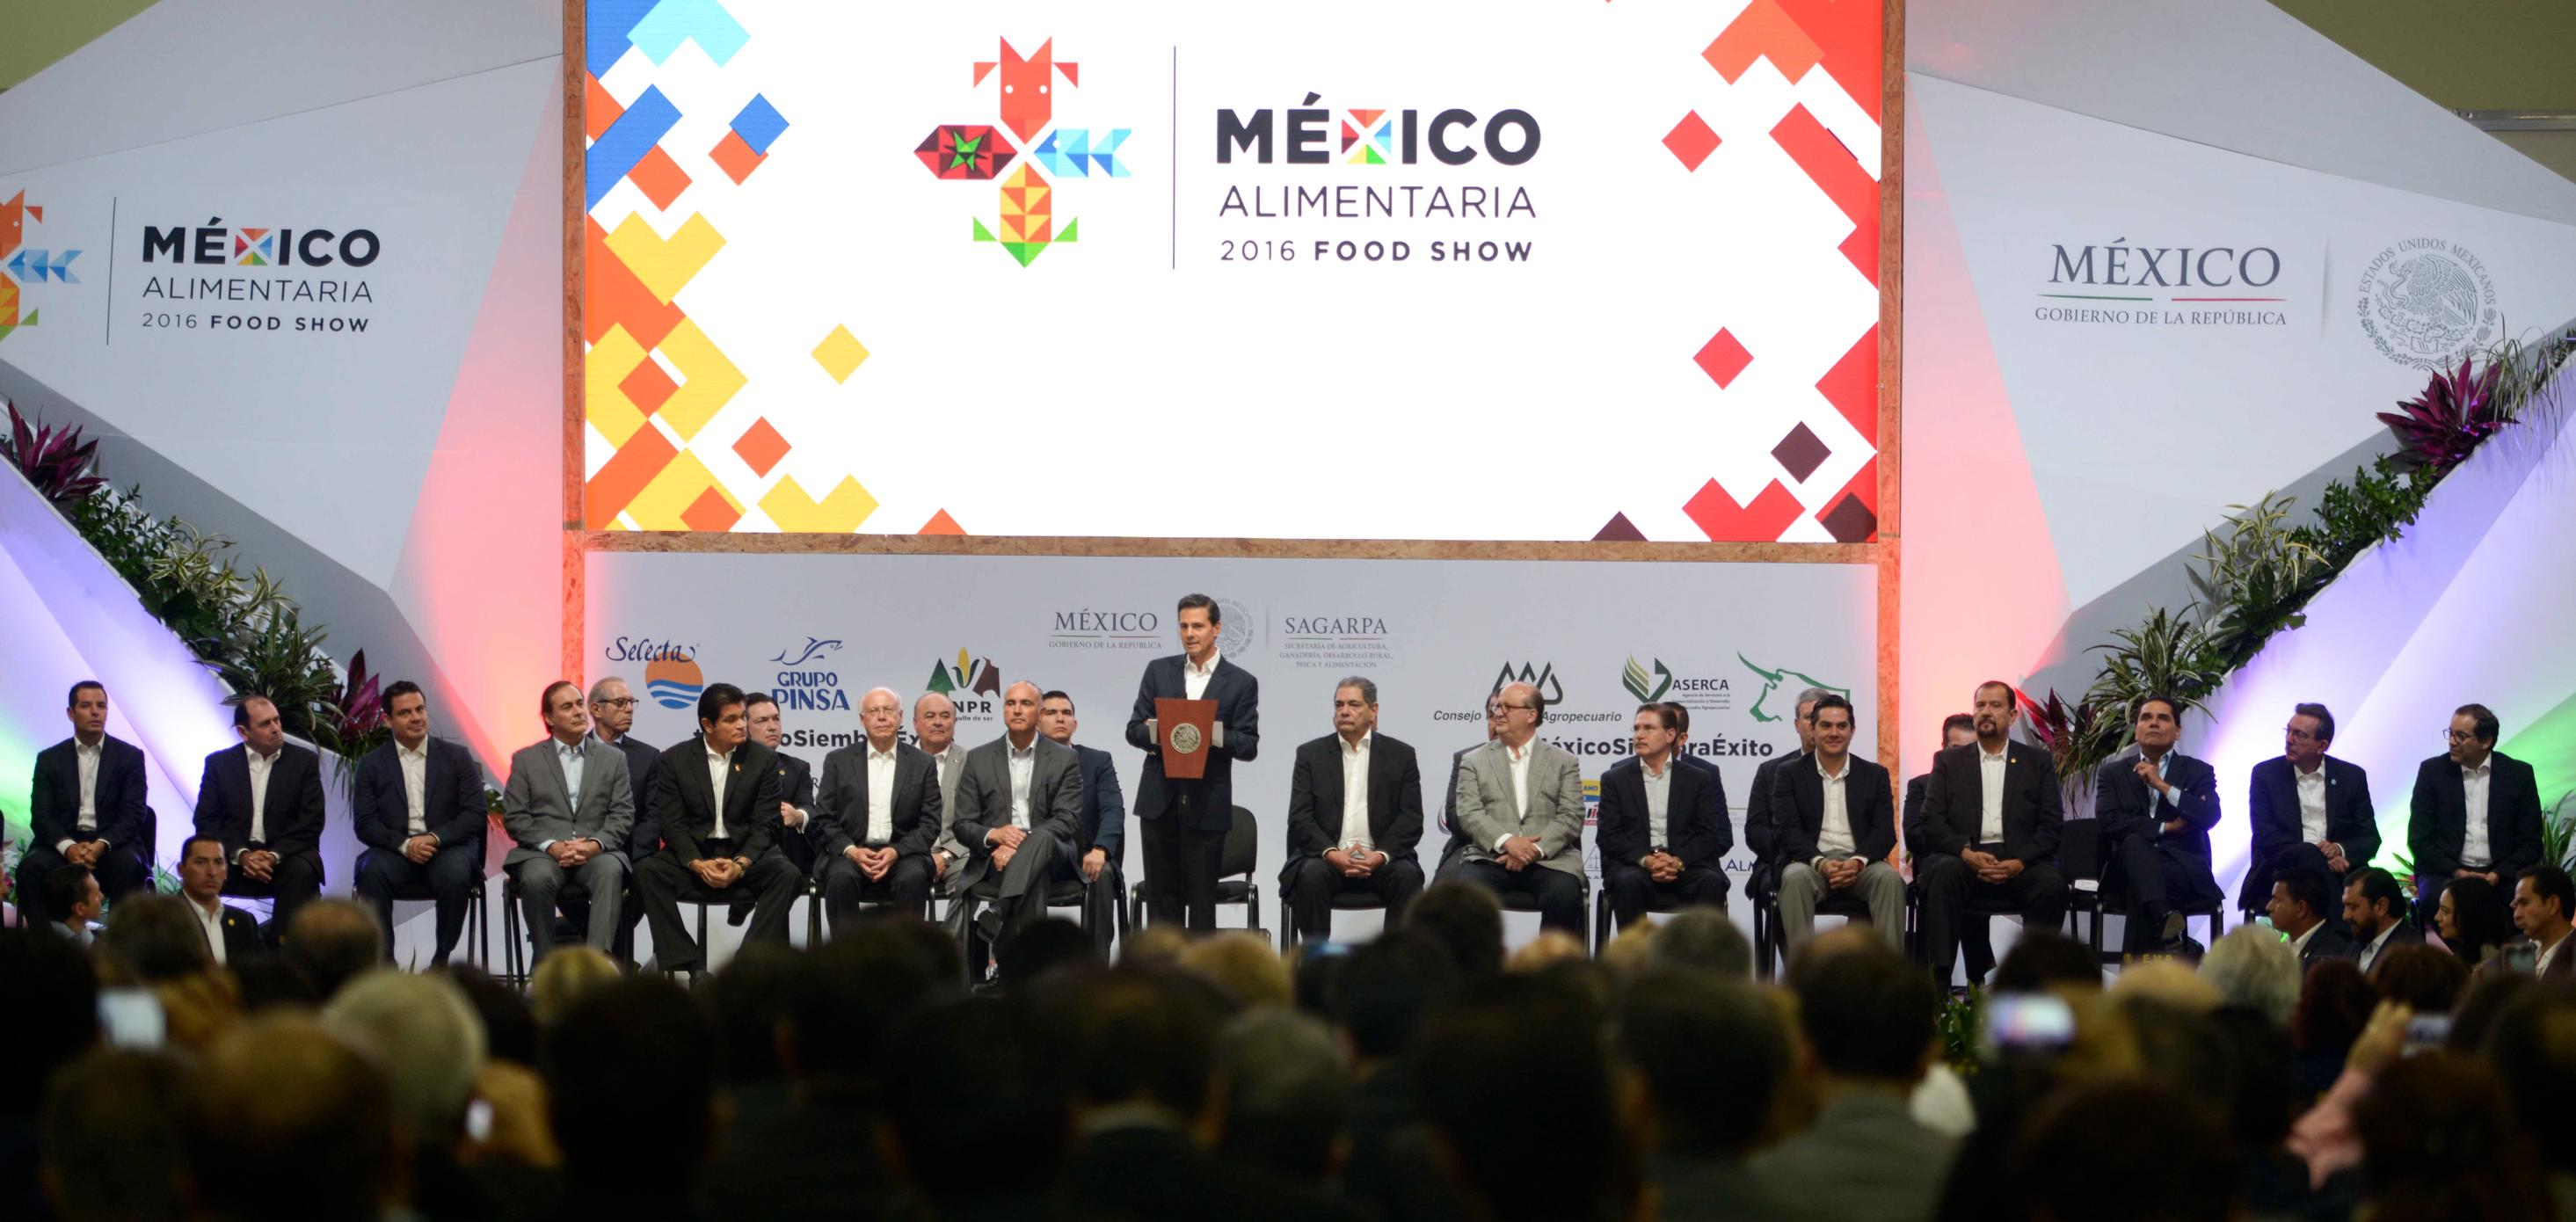 The president inaugurated the Mexico Food Expo, Food Show 2016